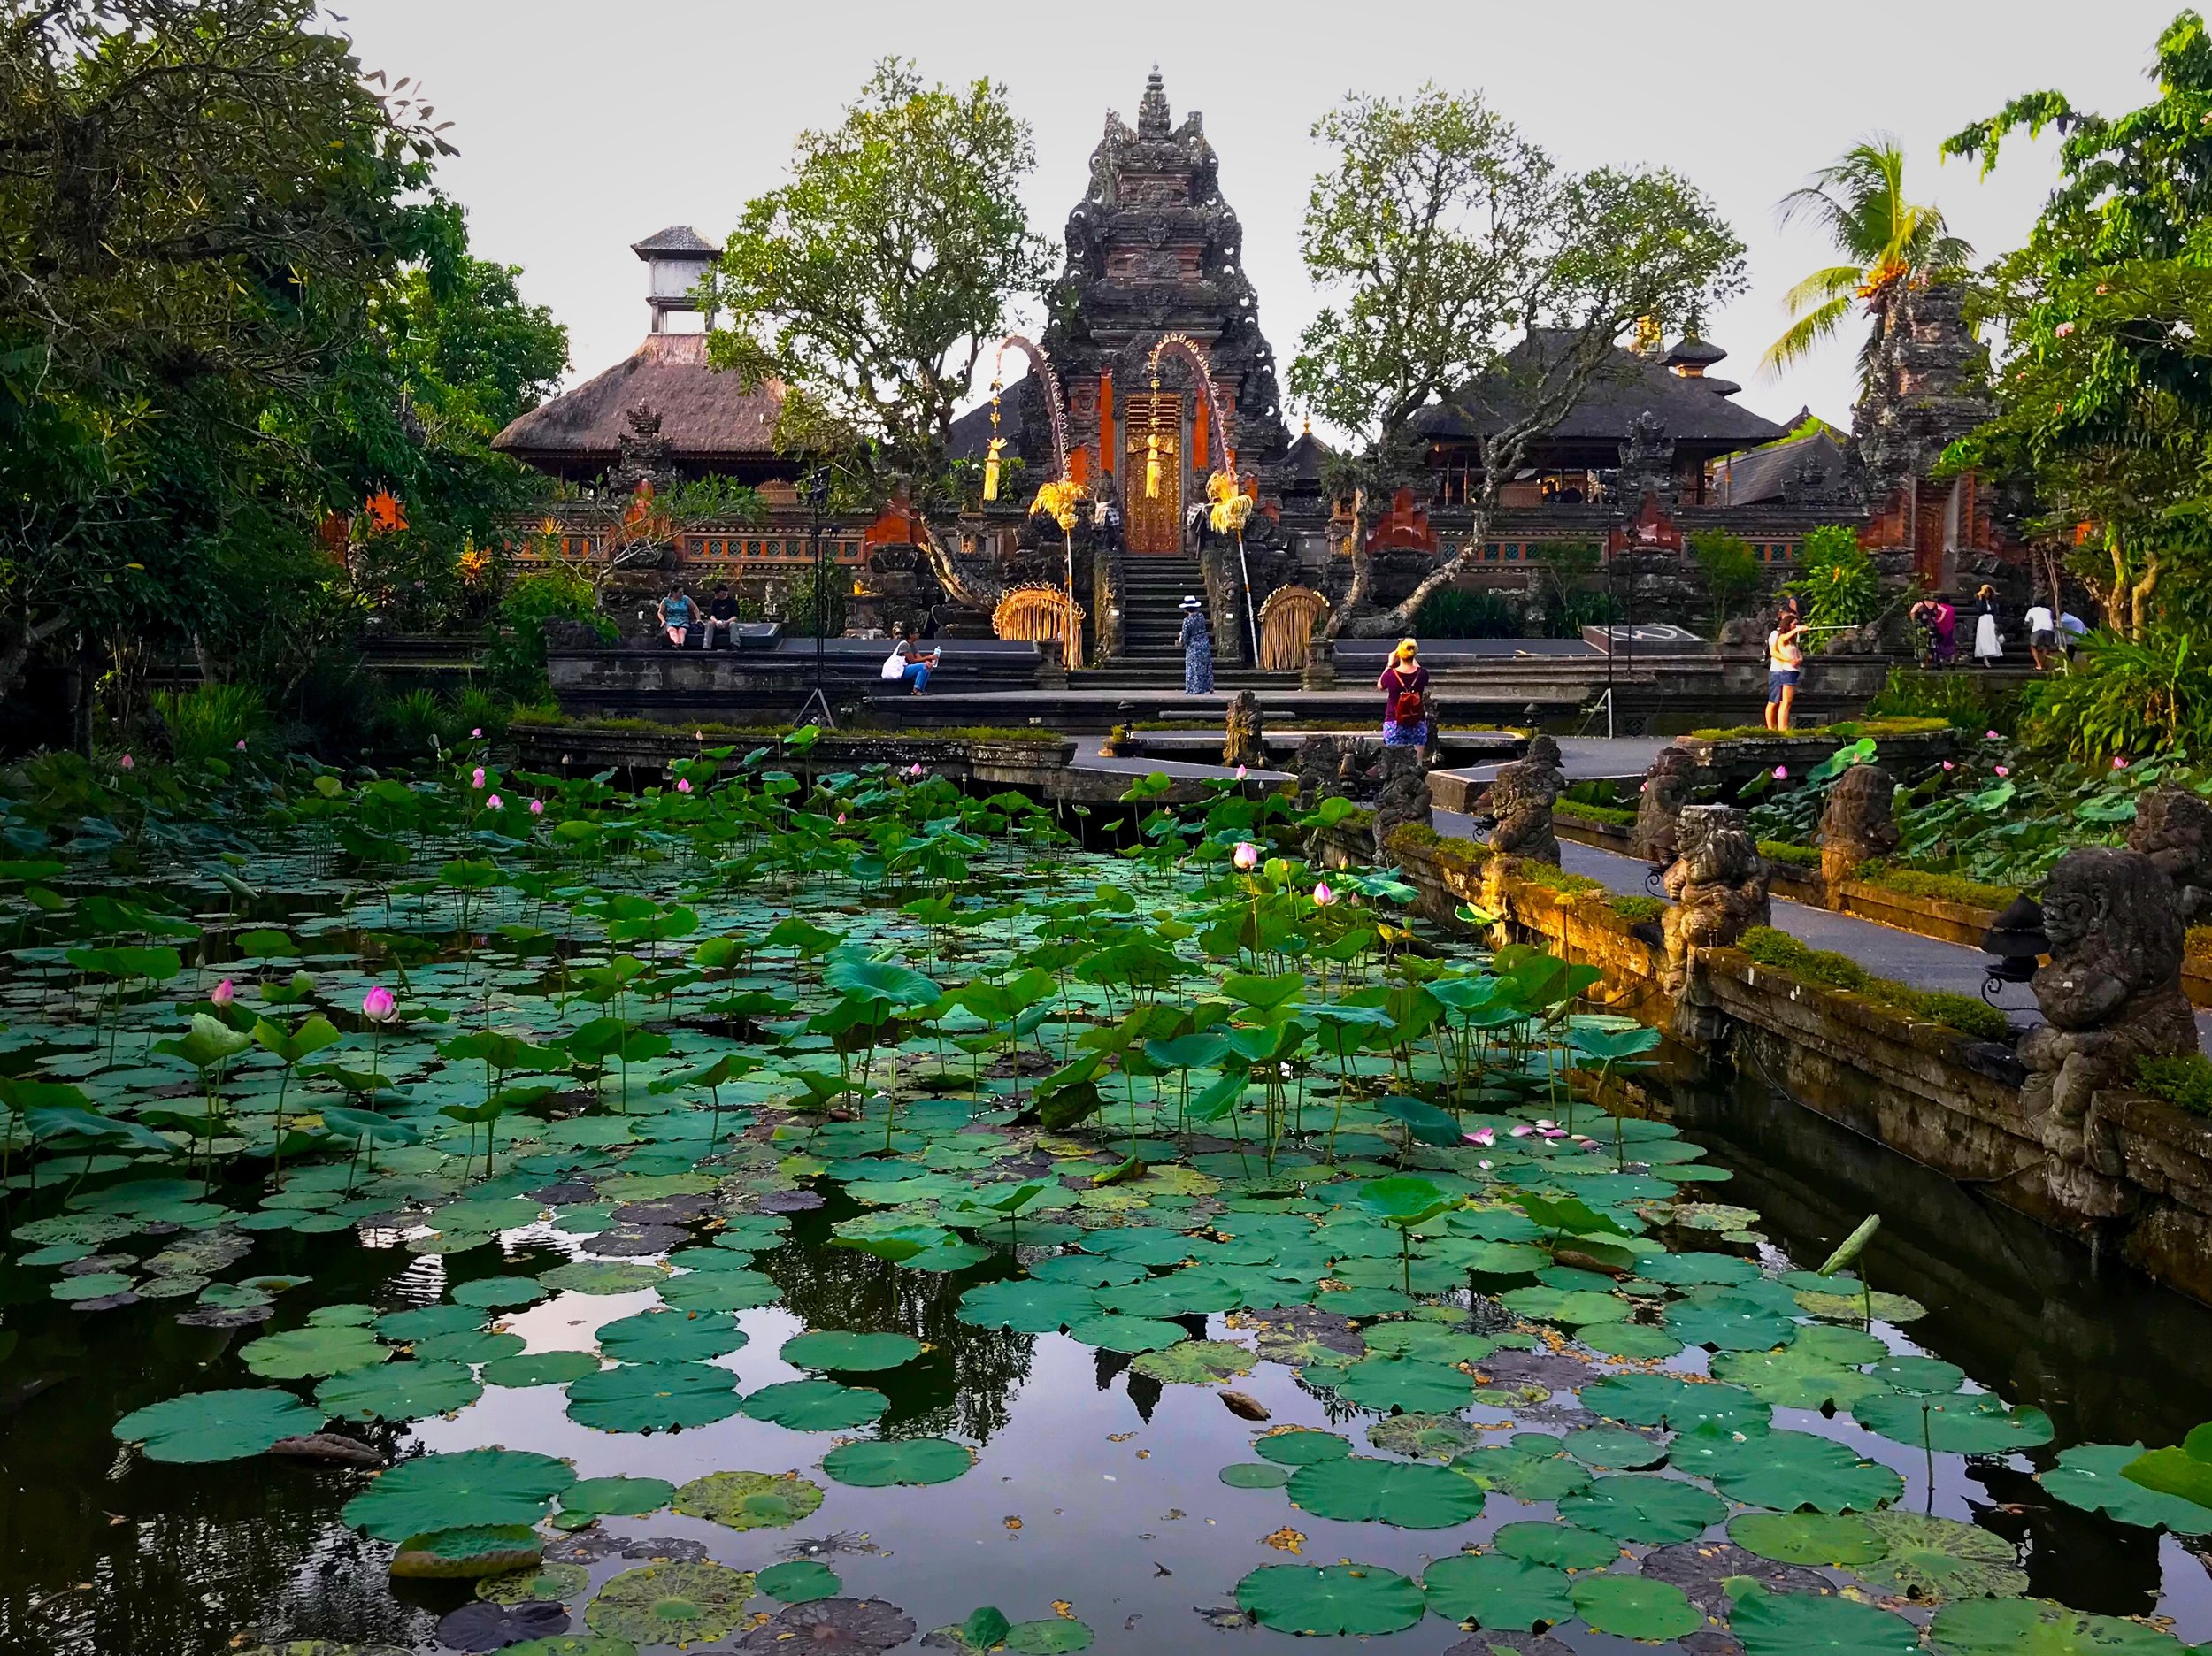 Bali now: One thing hasn't changed — the Saraswati Temple is still the centerpiece of Ubud